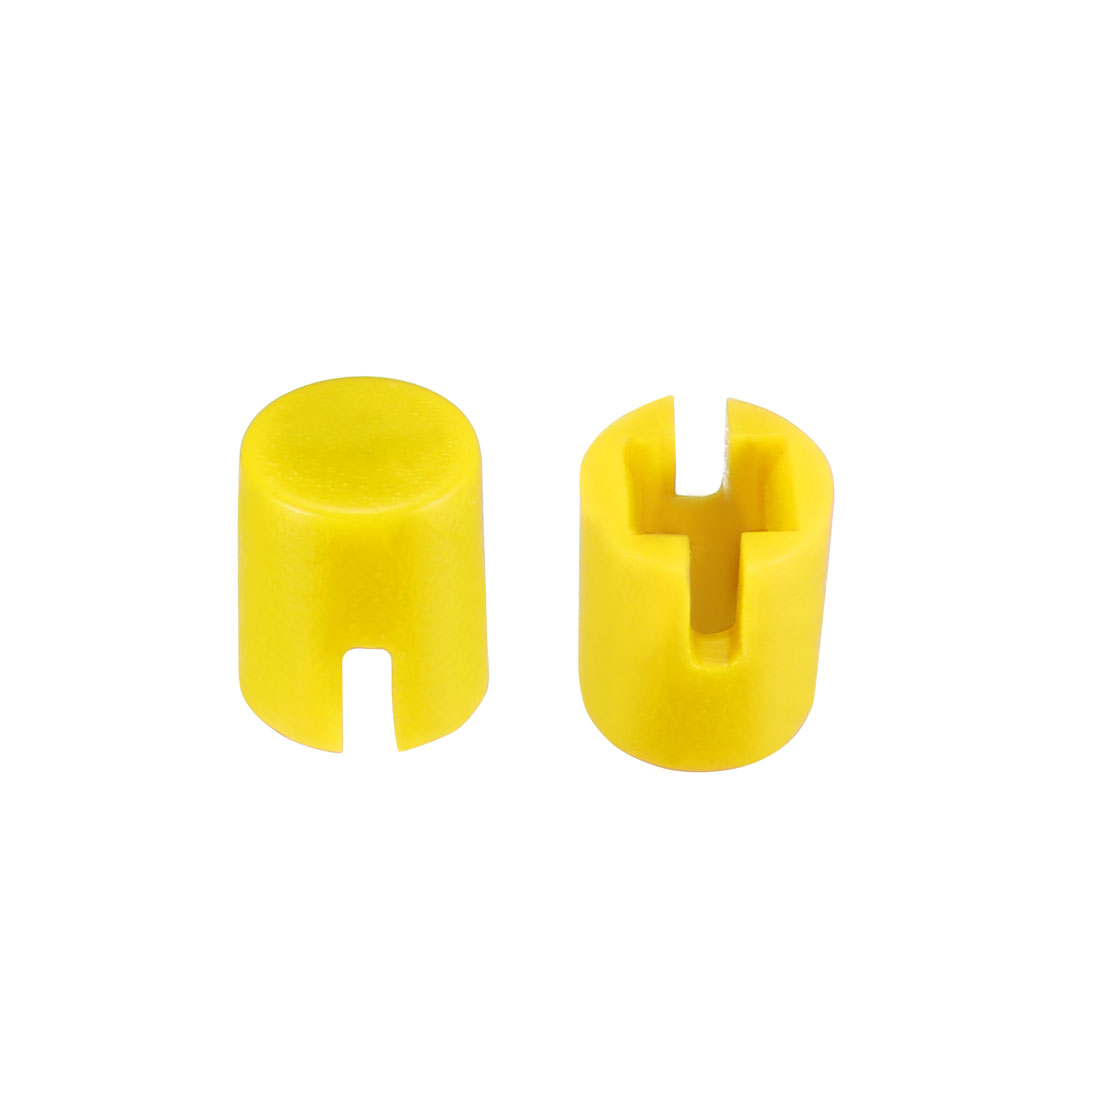 50Pcs 4.6x5.5mm Pushbutton Switch Caps Cover Yellow for 6x6x7.3mm Tact Switch